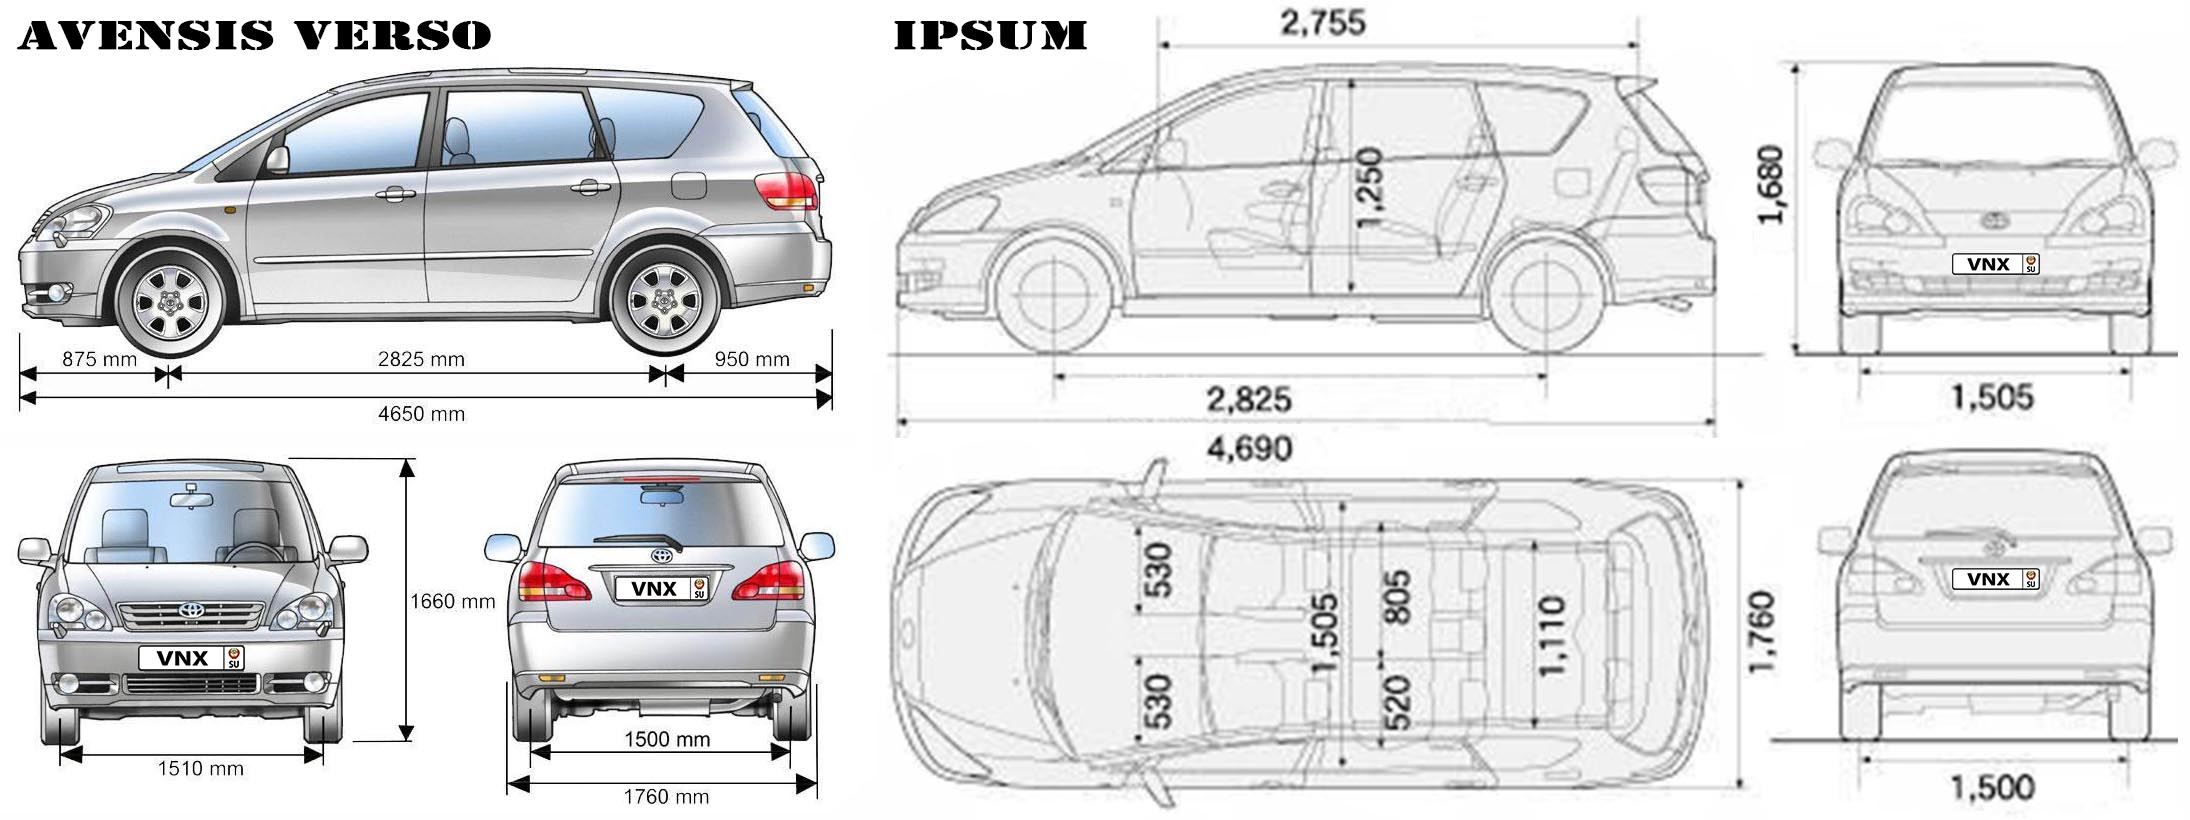 Toyota Ipsum Wiring Diagram Example Electrical Jeffdoedesign Com 2002 Tacoma Camry